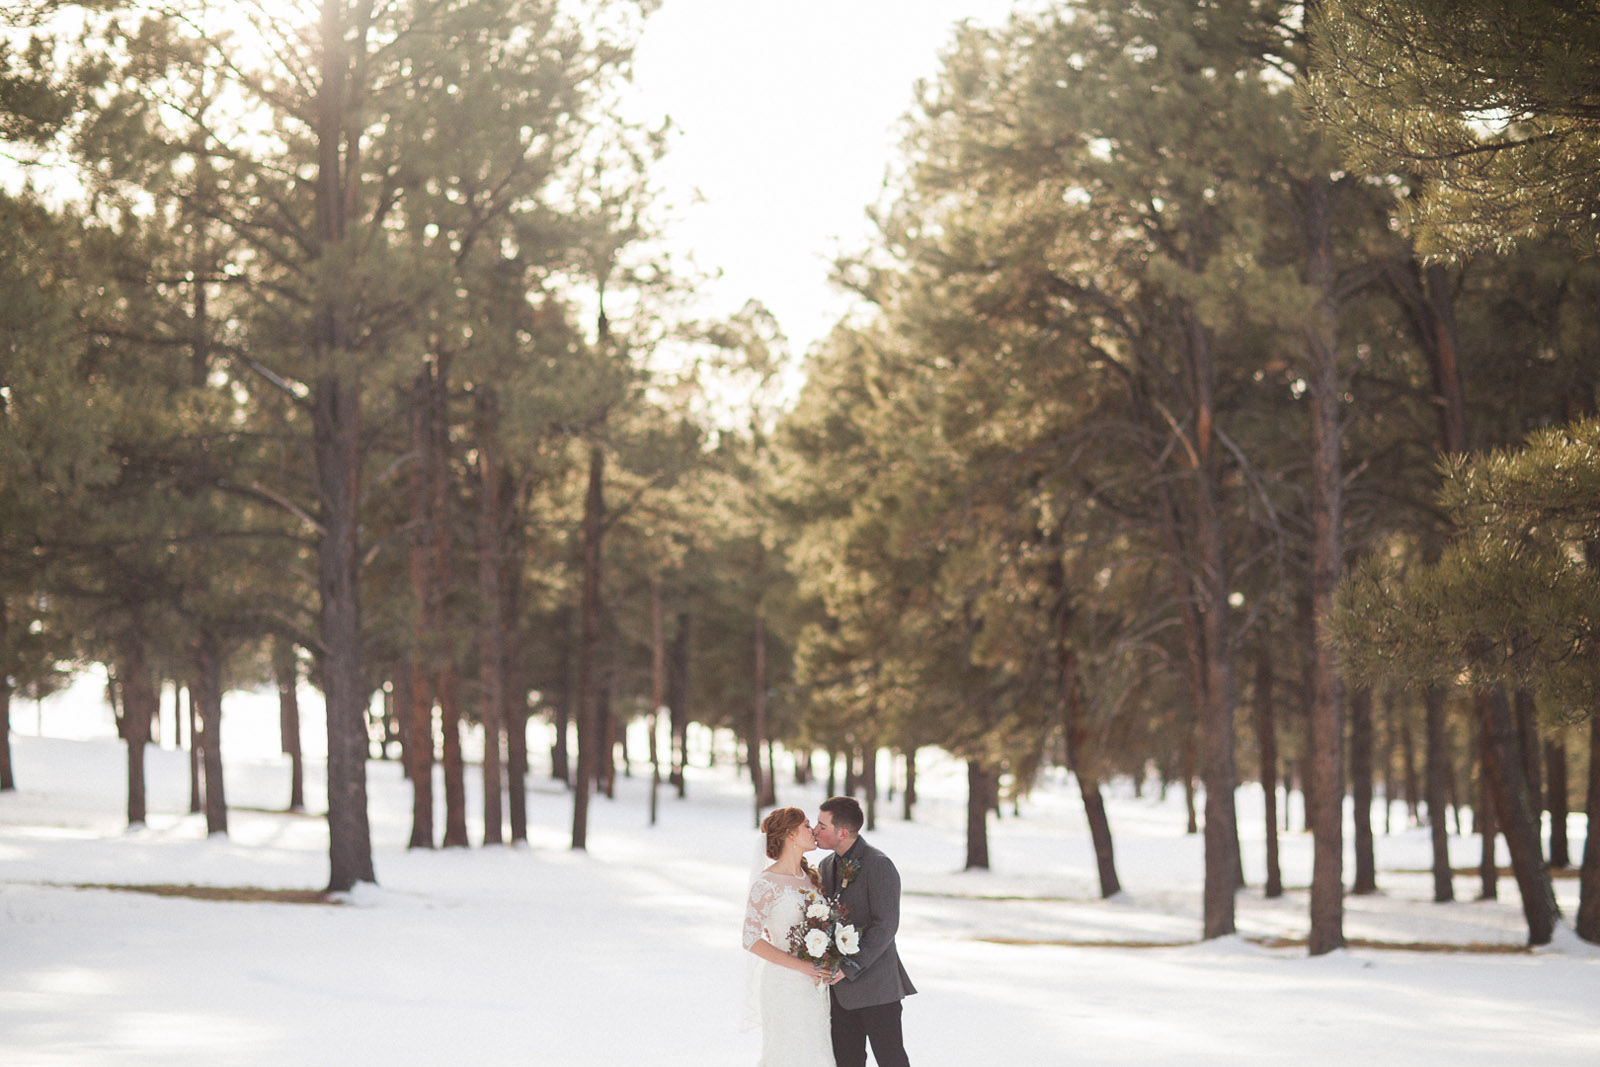 160-wedding-photographer-captures-newlyweds-in-snow-during-a-winter-snow-wedding-in-the-mountains-in-colorado